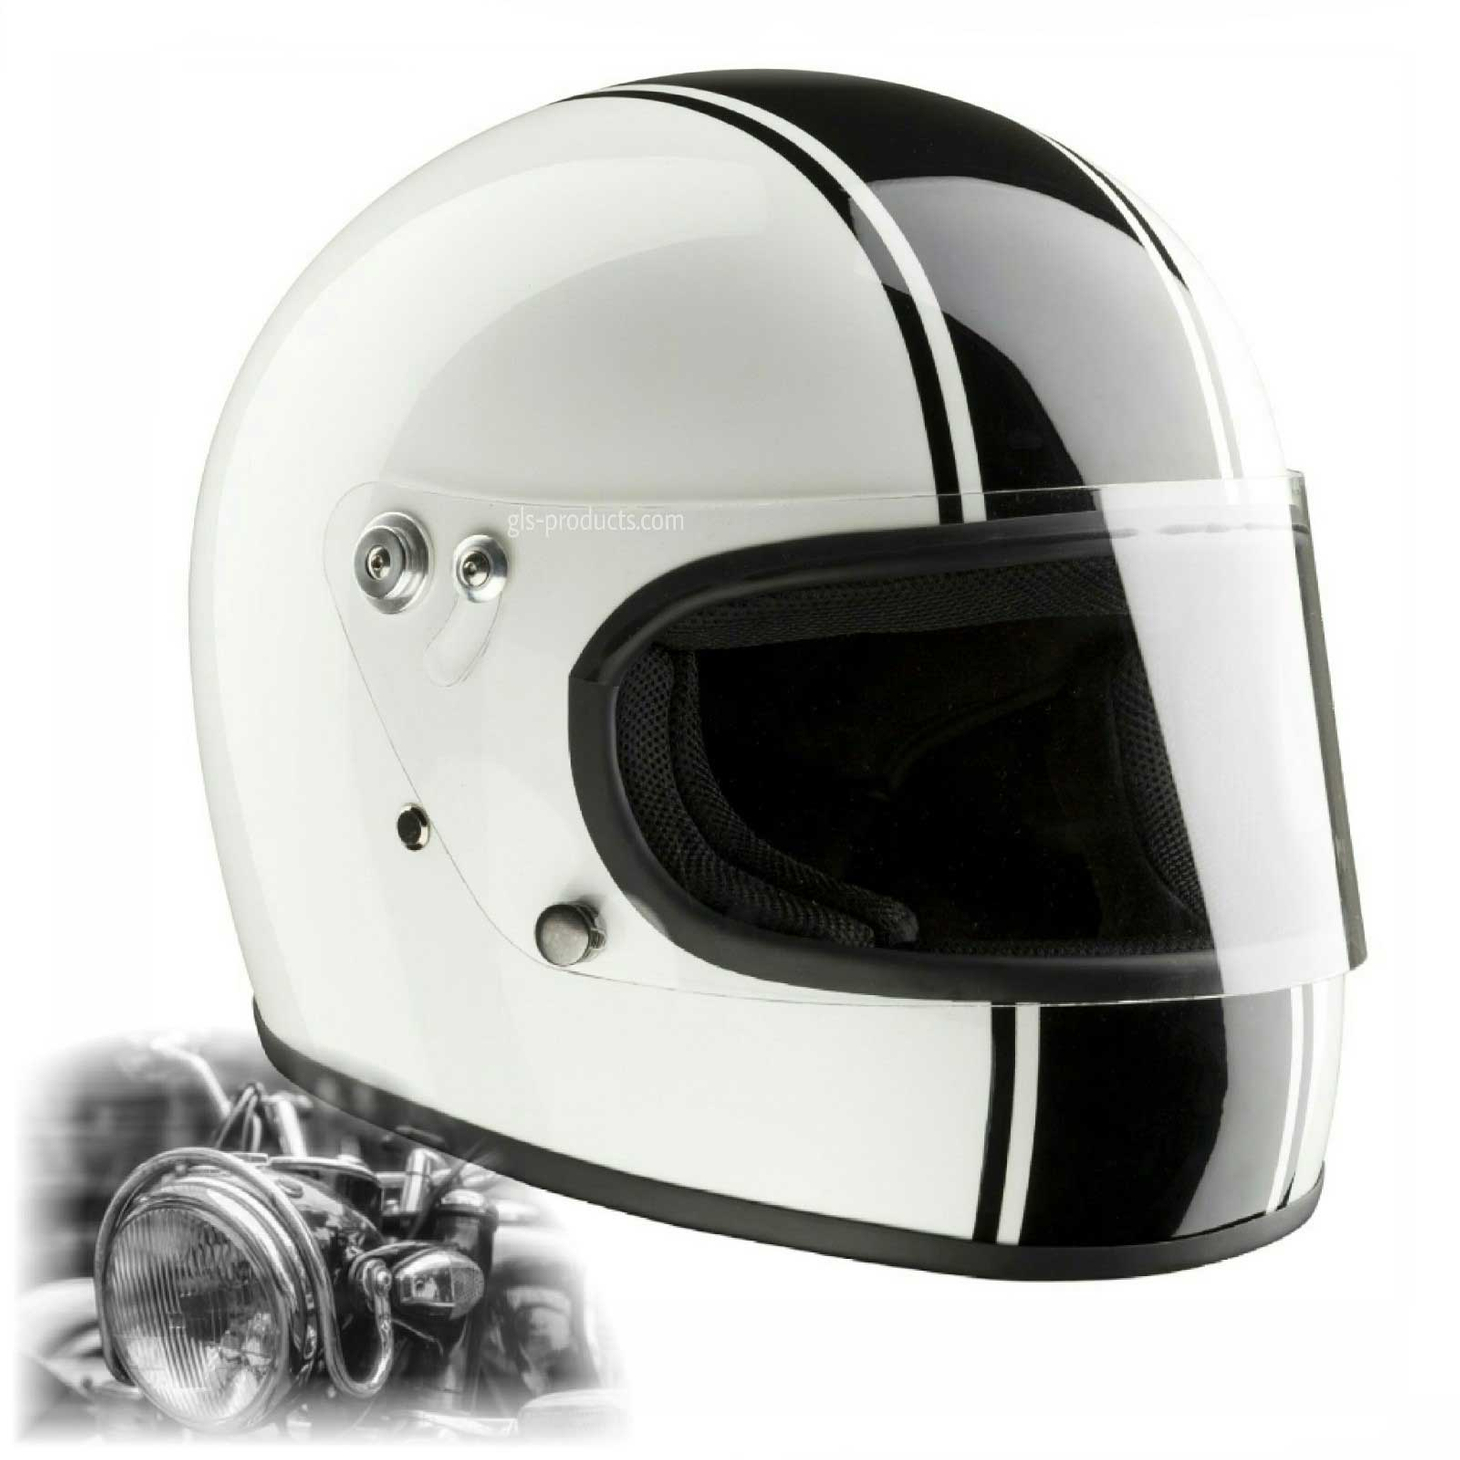 Bandit Integral ECE 22-05 homologated Retro Motorcycle Helmet – Picture 4